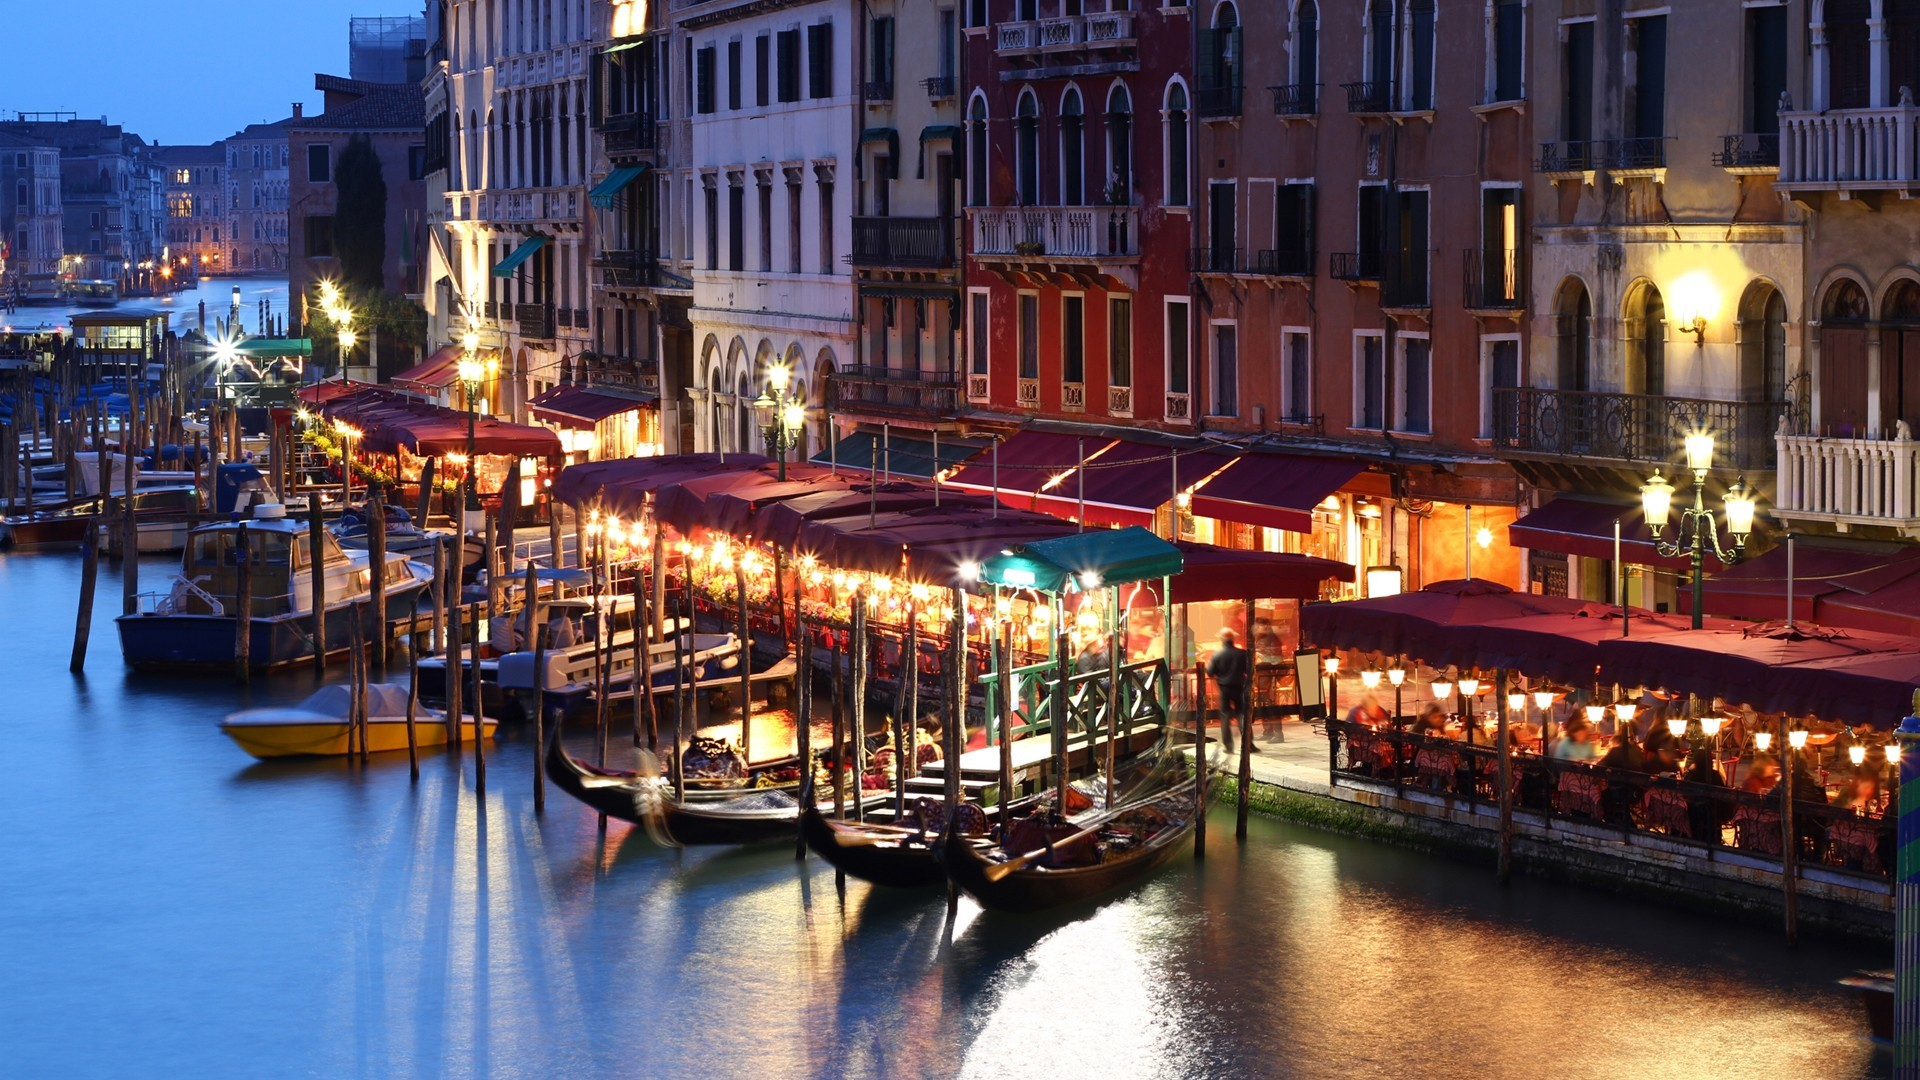 Download Wallpaper light water streets night venice grand italy canal cities  night city -2440-